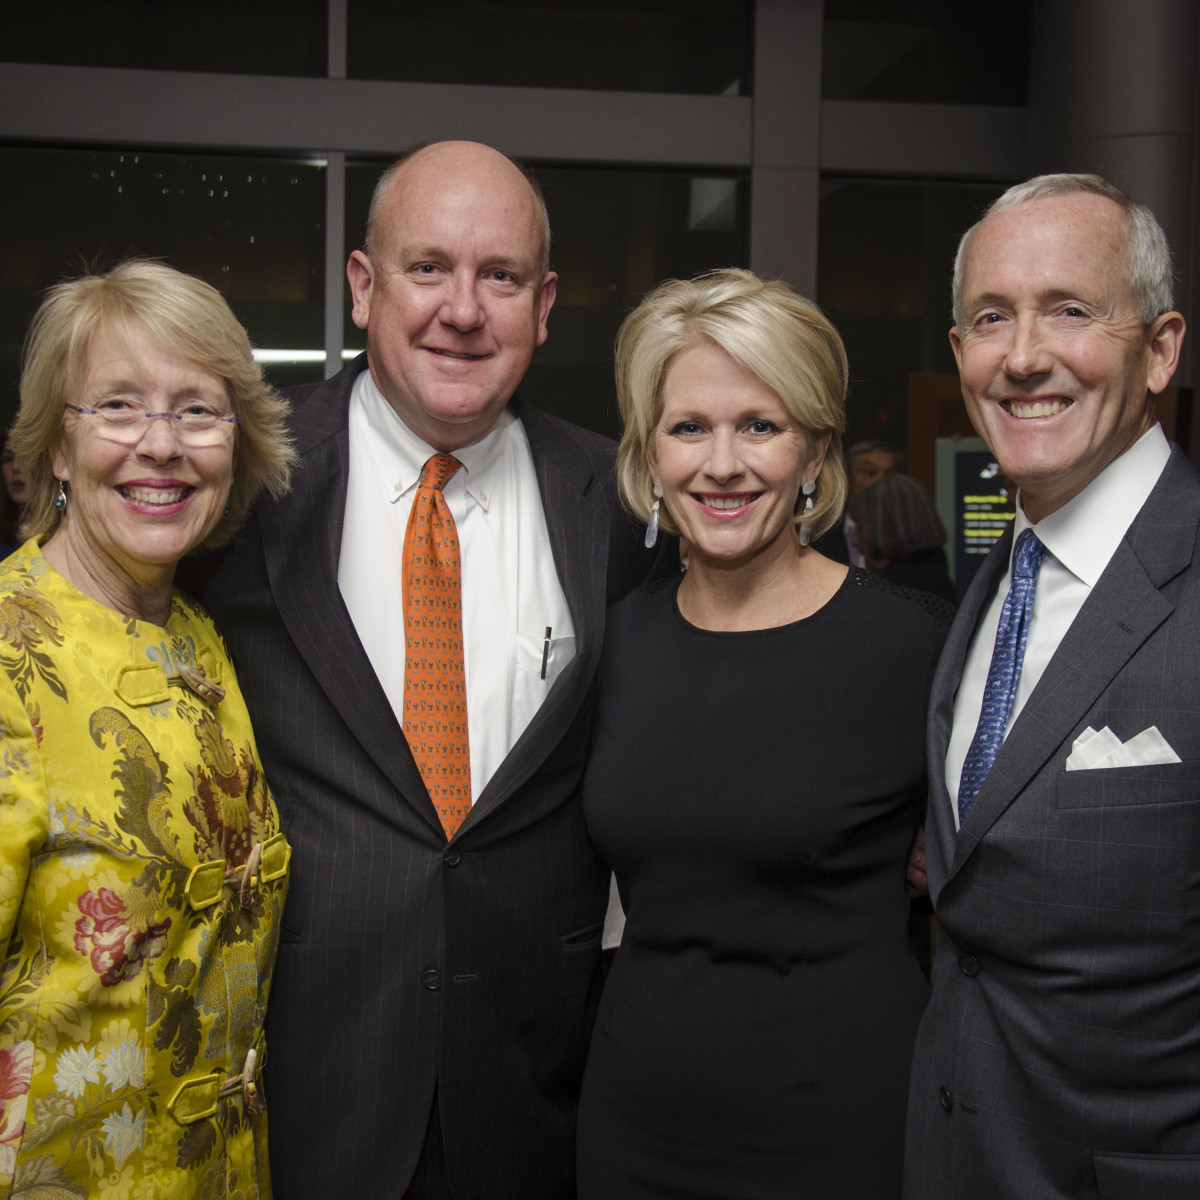 Texas Heart Institute dinner, Feb. 2016, Susan Cooley, Dr. Charles Fraser, Helen Fraser, Dr. John Craddock